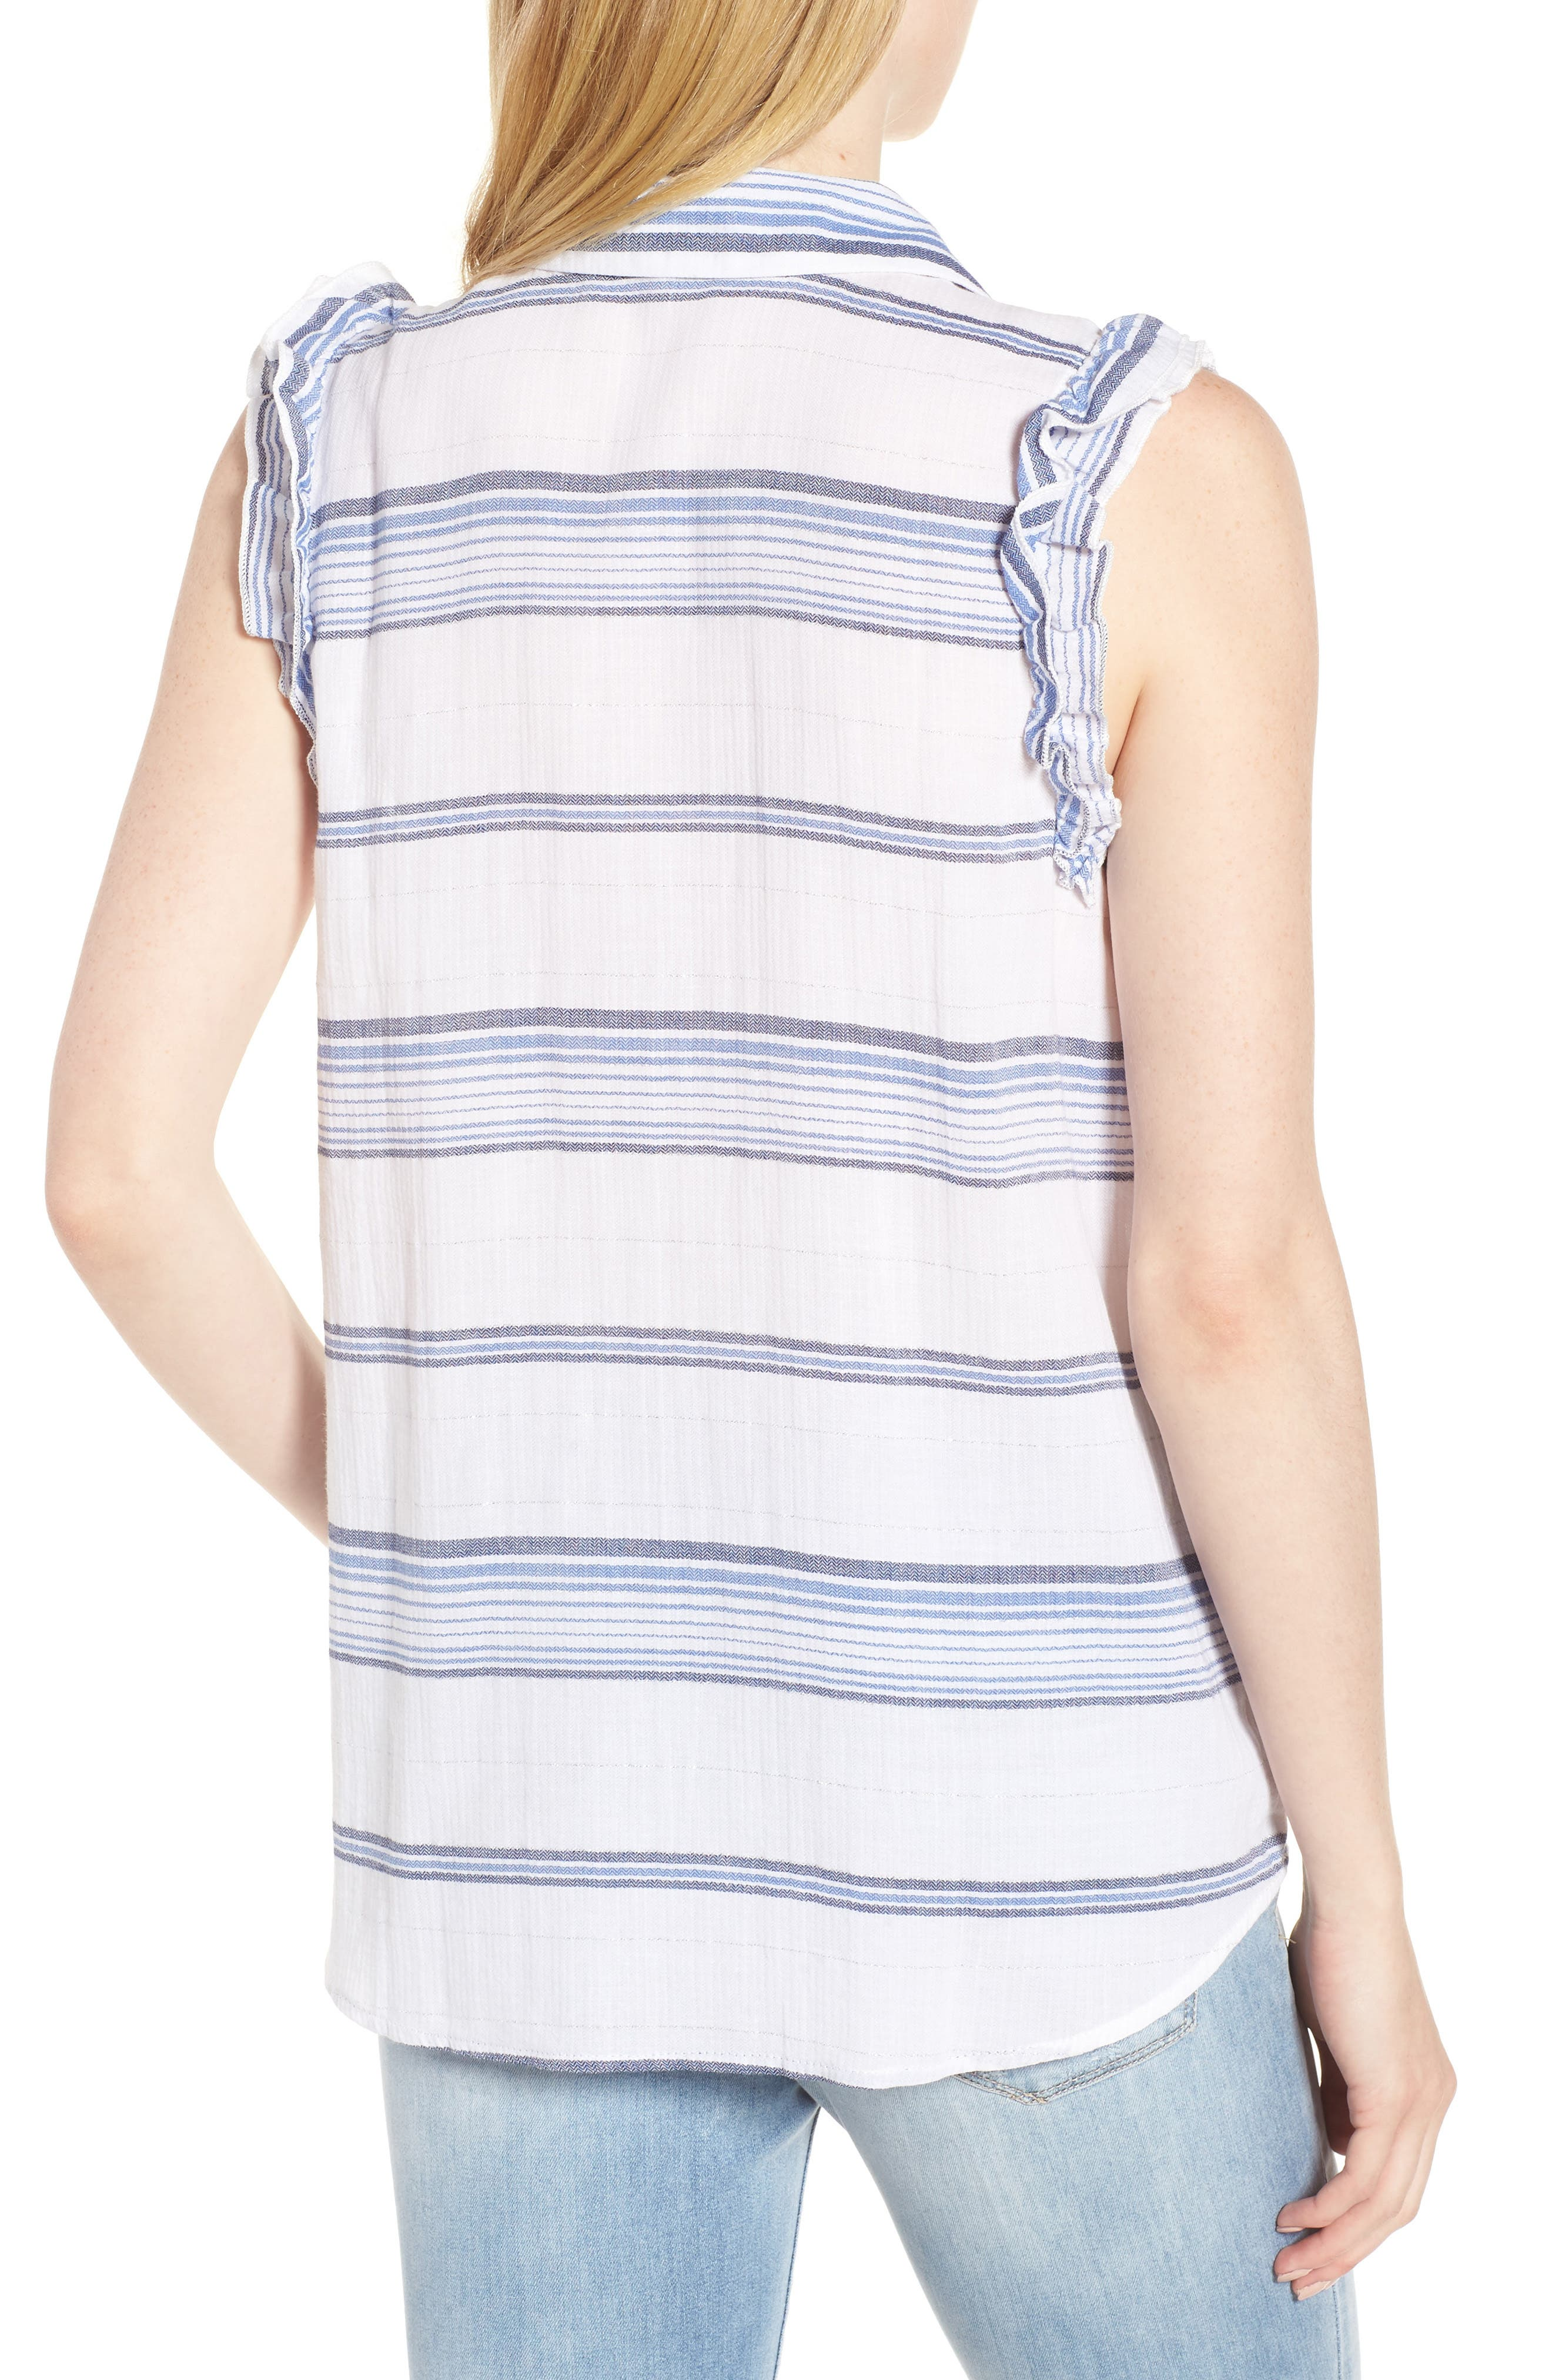 Ruffled Sleeve Striped Top,                             Alternate thumbnail 2, color,                             450